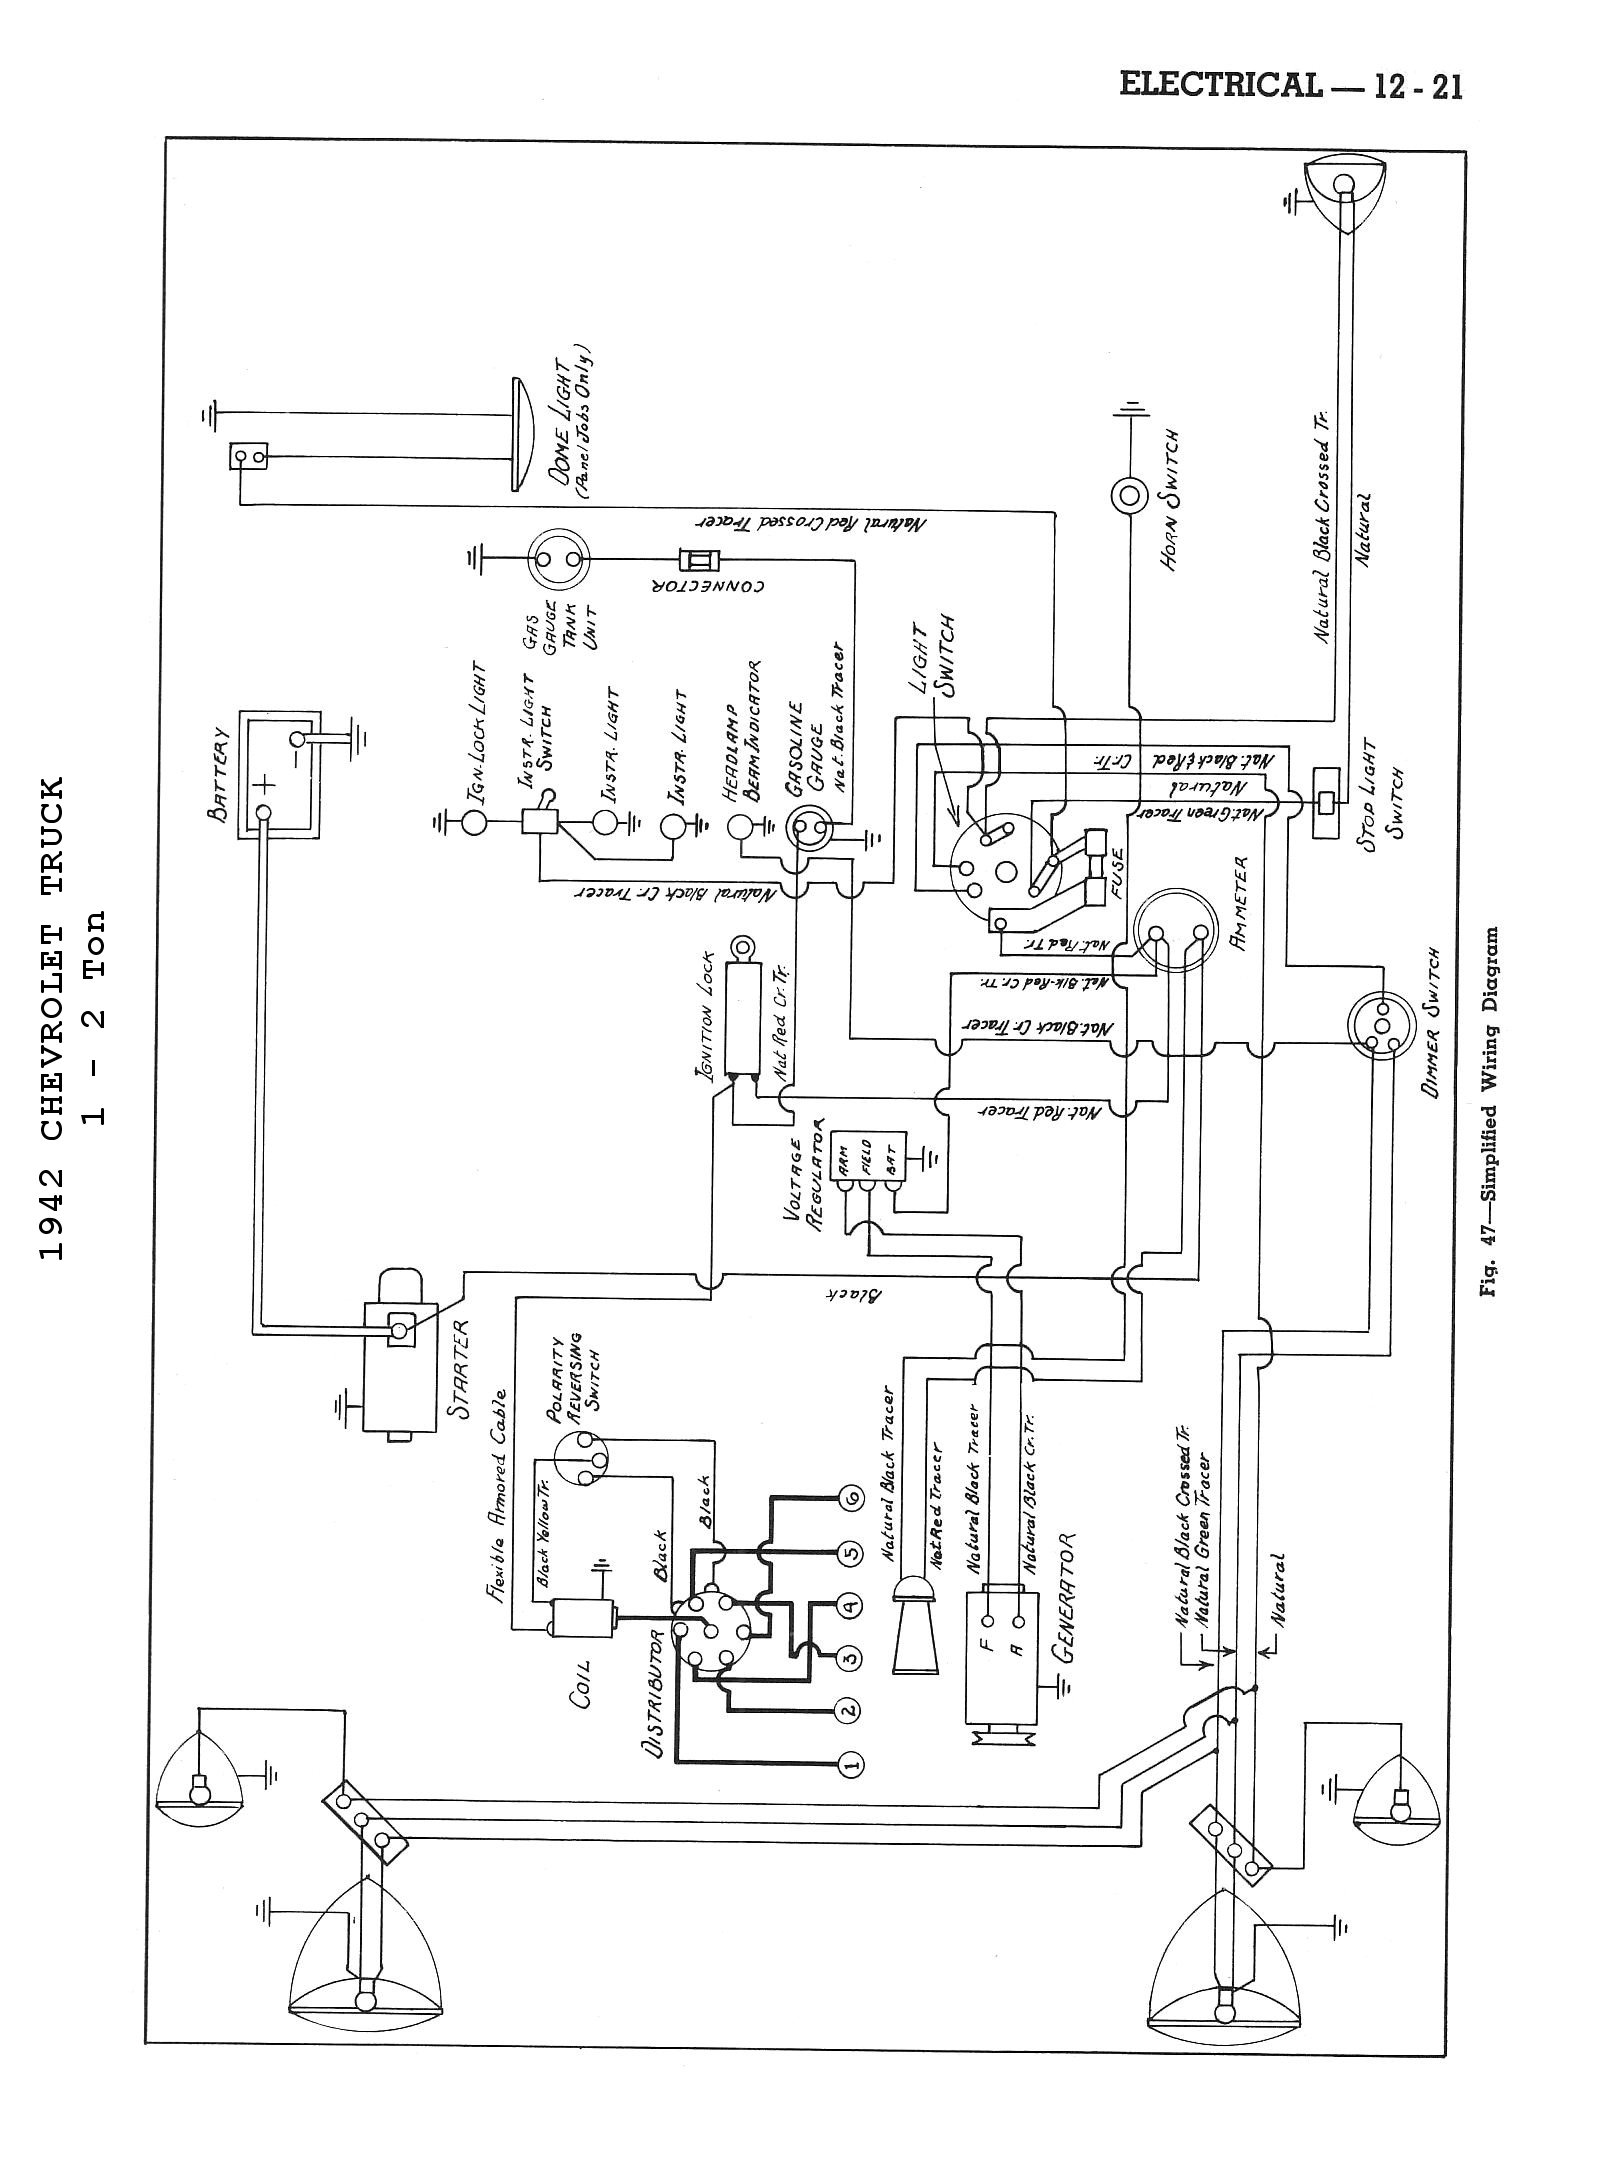 42cm4x2t1221 chevy wiring diagrams  at gsmx.co